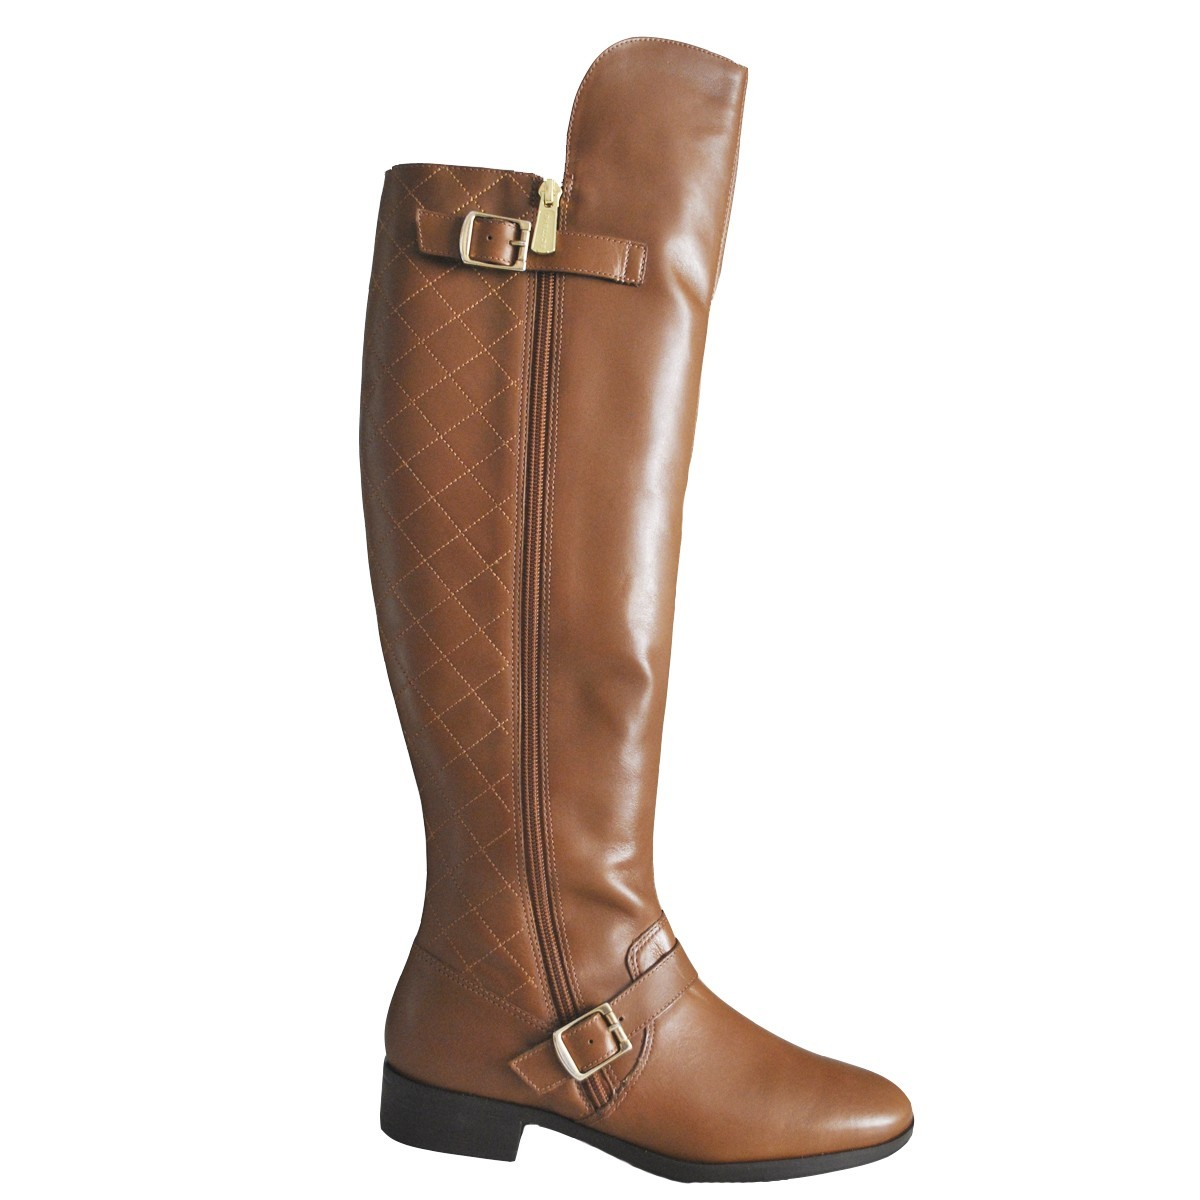 102d25d4348 Bizz Store - Bota Montaria Feminina Couro Bottero Over The Knee